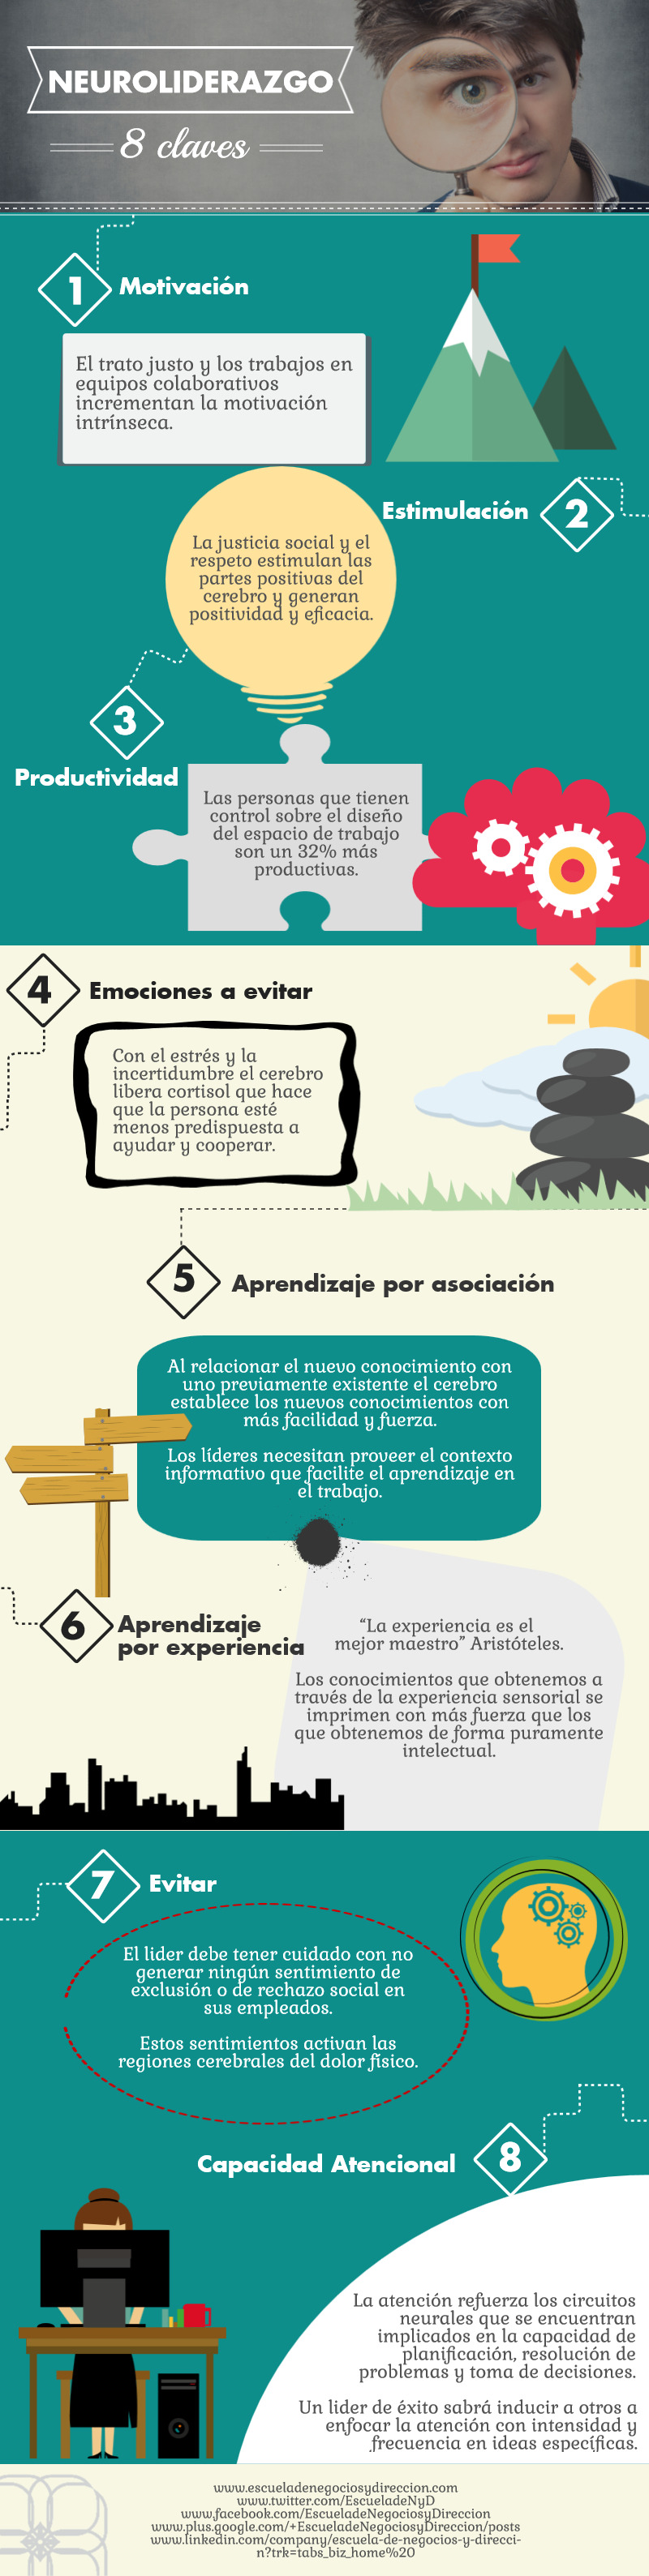 Claves  Neuroliderazgo